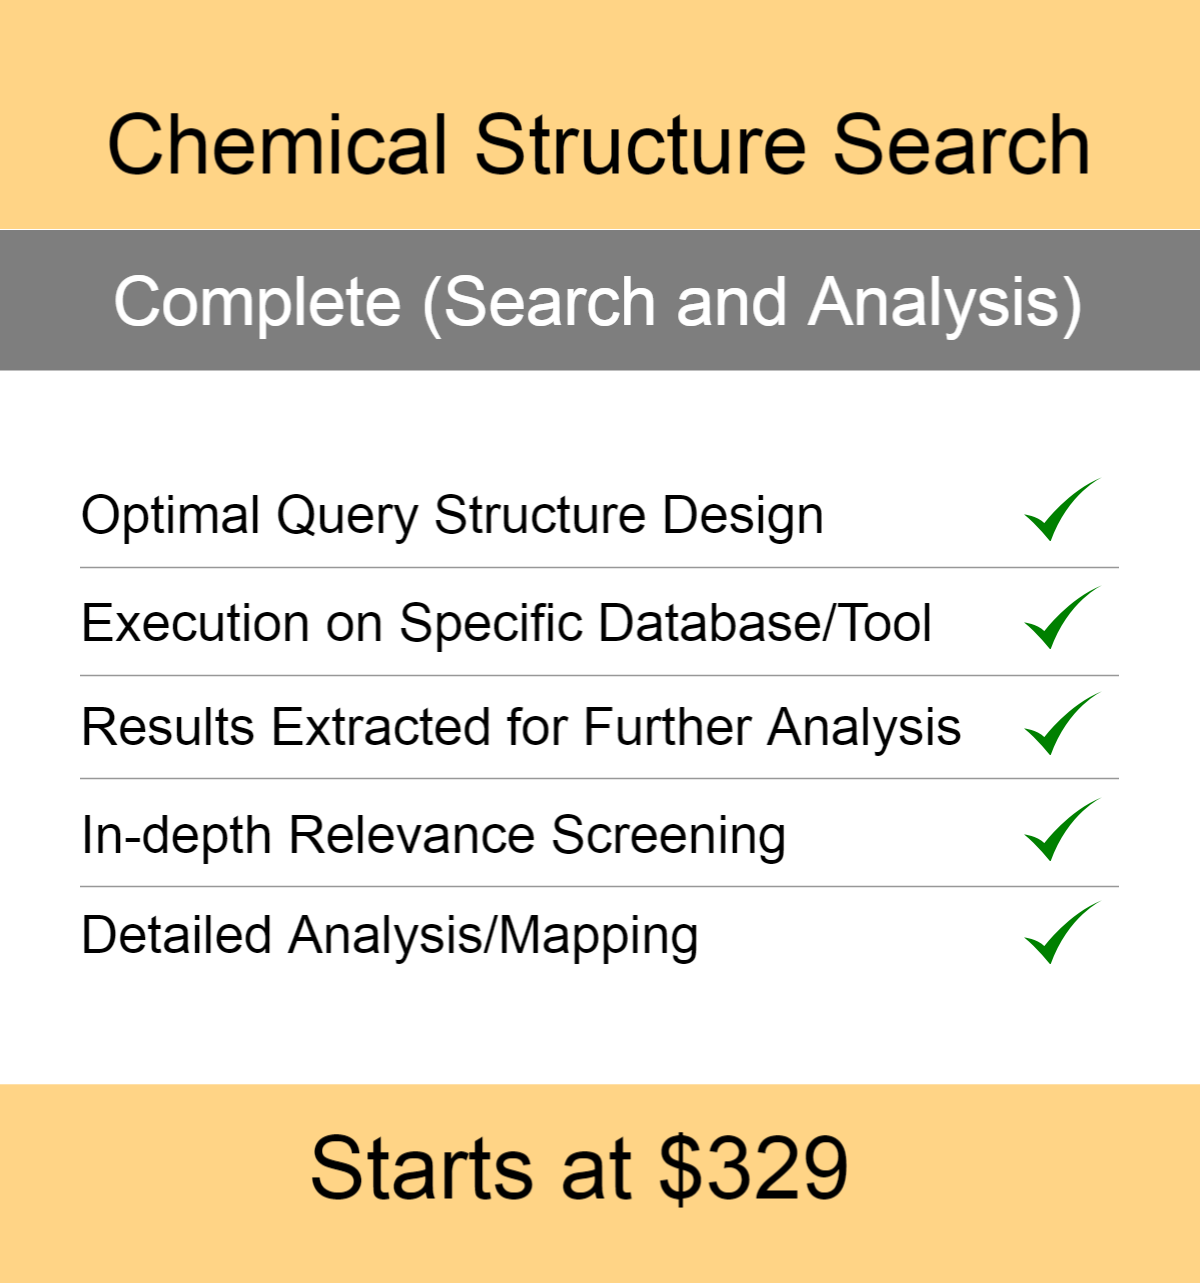 Chemical Structure Search Services at Affordable Price